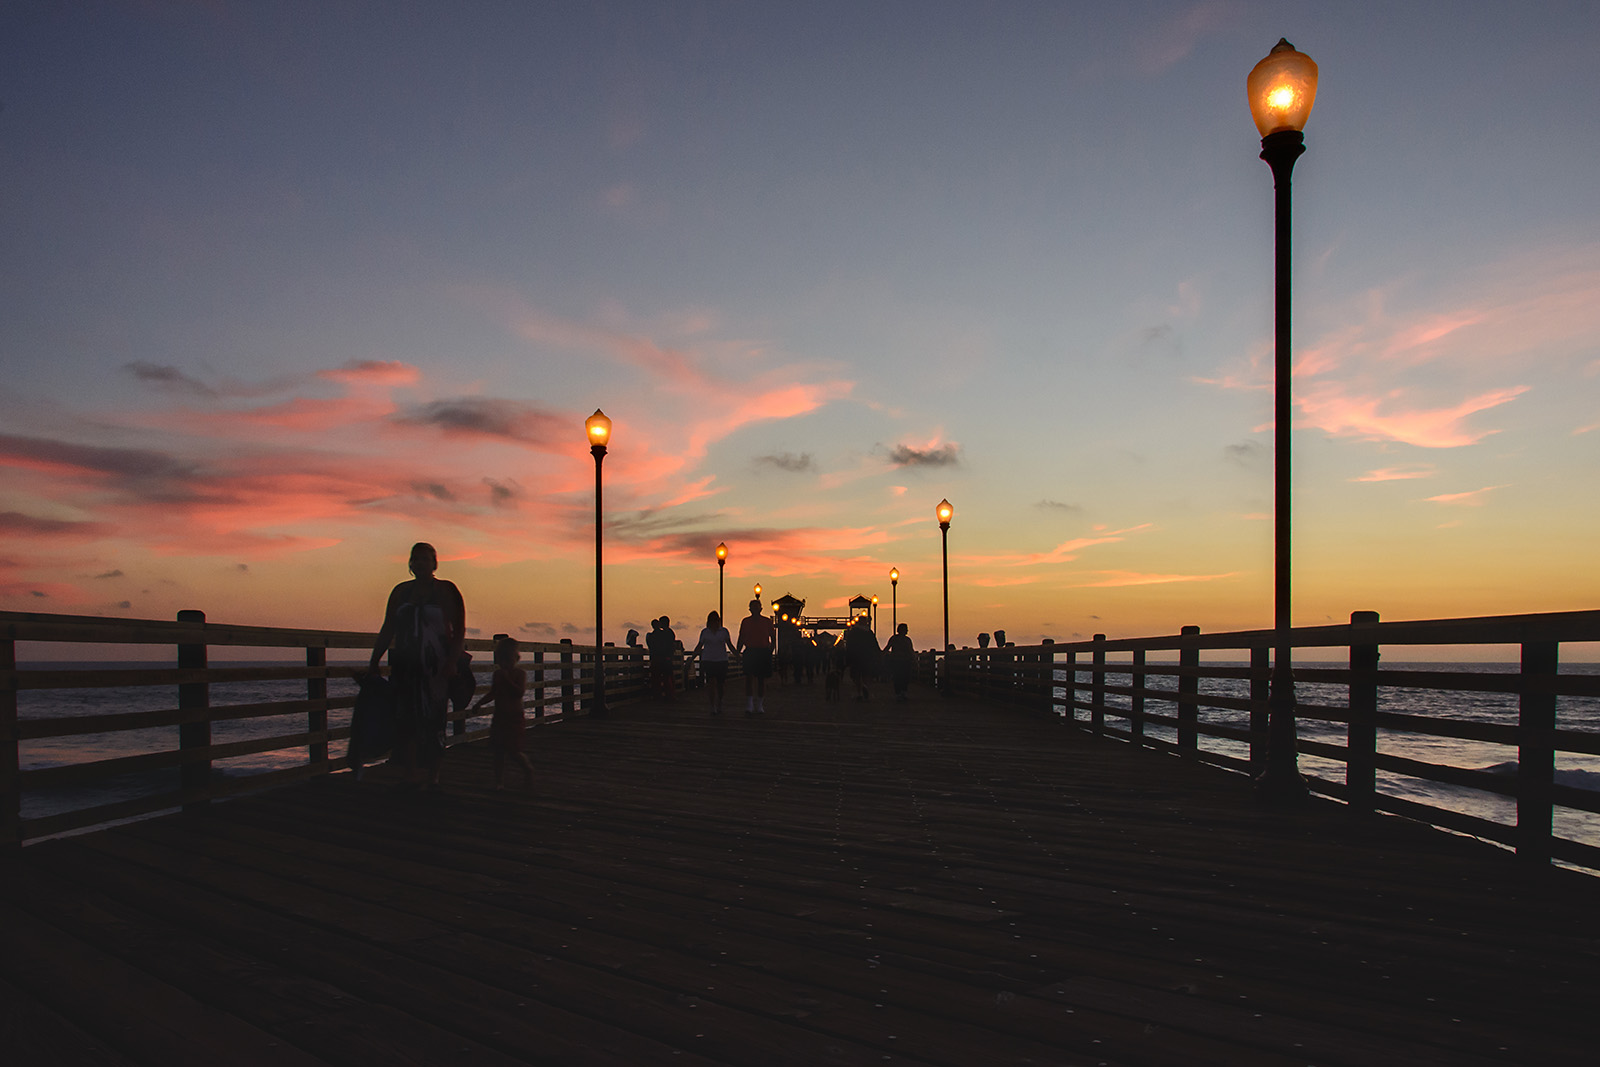 Walking the pier at sunset in Oceanside, California (photo by Tyann Marcink)